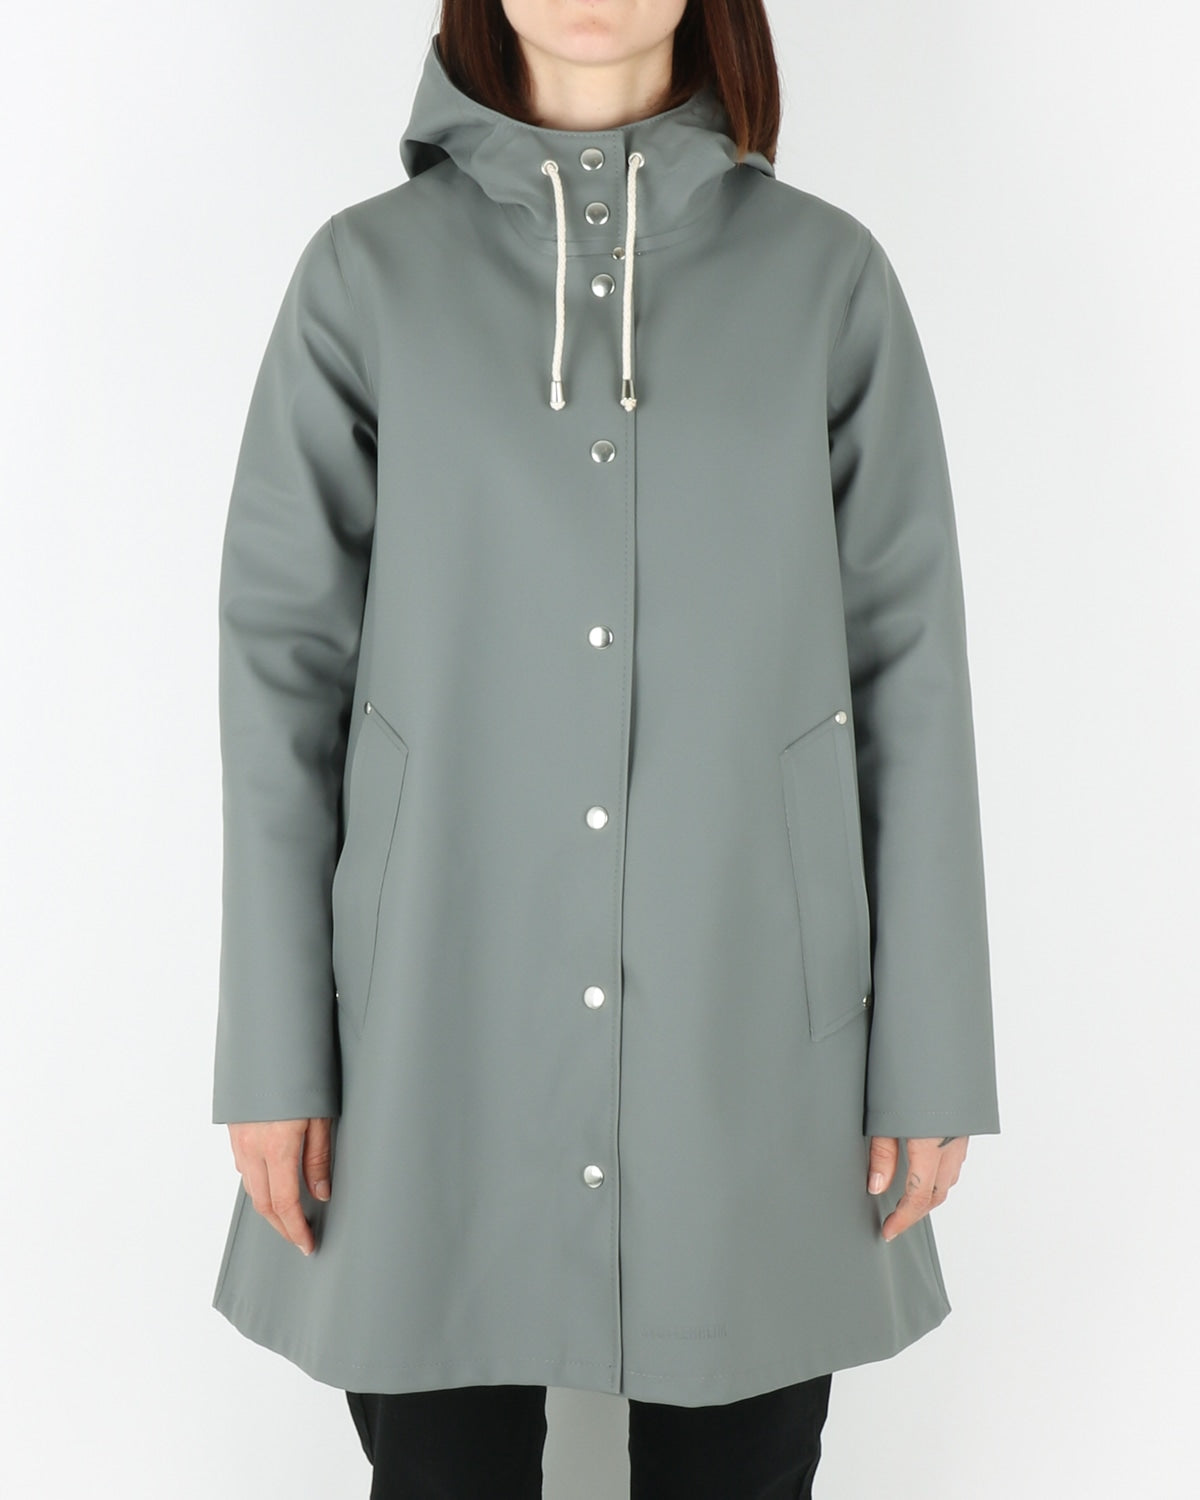 stutterheim_mosebacke_raincoat_grey_view_1_3